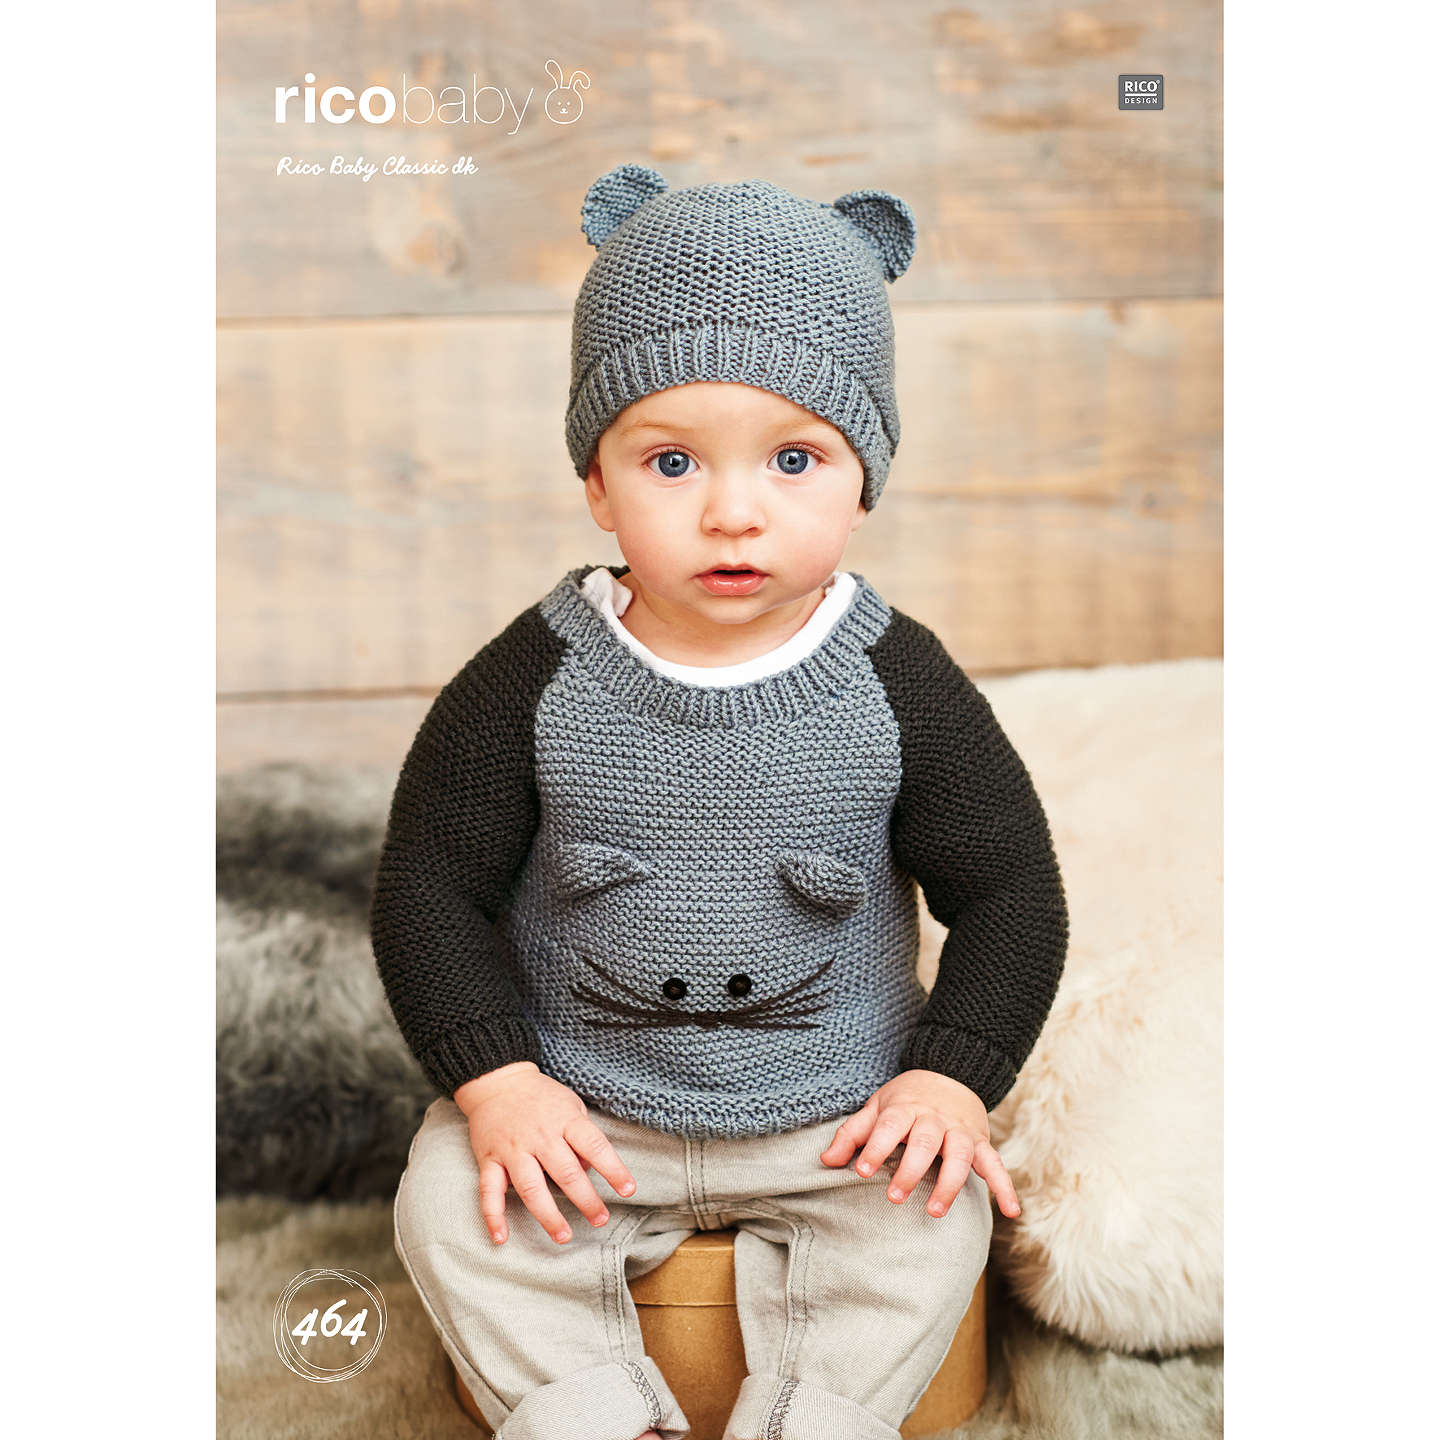 Rico Baby Classic DK Baby Jumper and Hat Knitting Pattern, 464 at ...